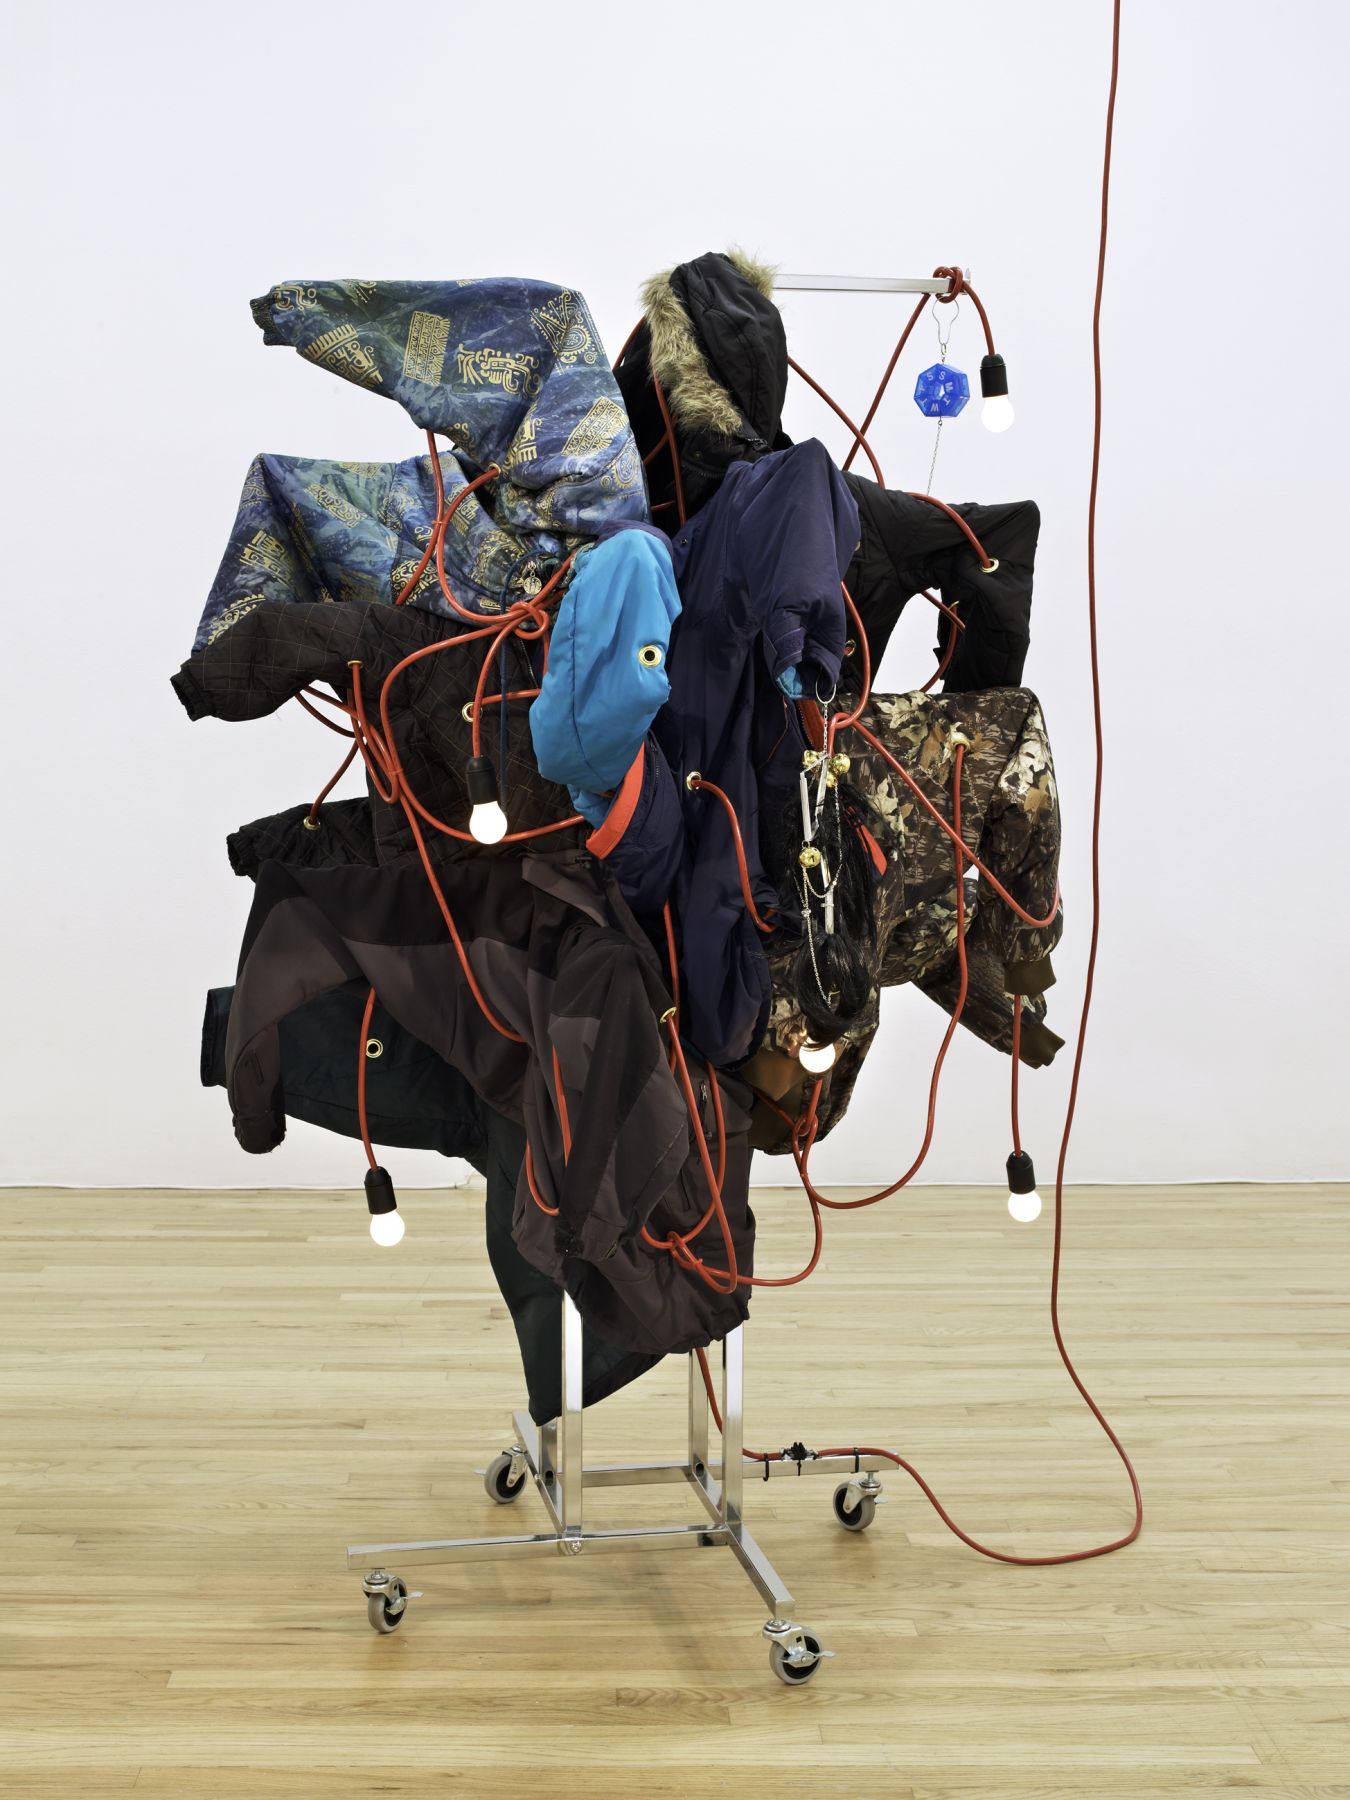 Haegue Yang Wild in Aspen: Wrapping up the Season, 2011 Four-way straight-arm clothing rack (chrome) on casters with nineteen arms, light bulbs (frosted), cable, bells, wigs, pillbox, chain, folder clips, winter coats, and jackets 72 x 36 x 36 inches (182.9 x 91.4 x 91.4 cm) Installation view, The Art and Technique of Folding the Land, curated by Heidi Zuckerman Jacobson, Aspen Art Museum, Aspen, Colorado, 2011